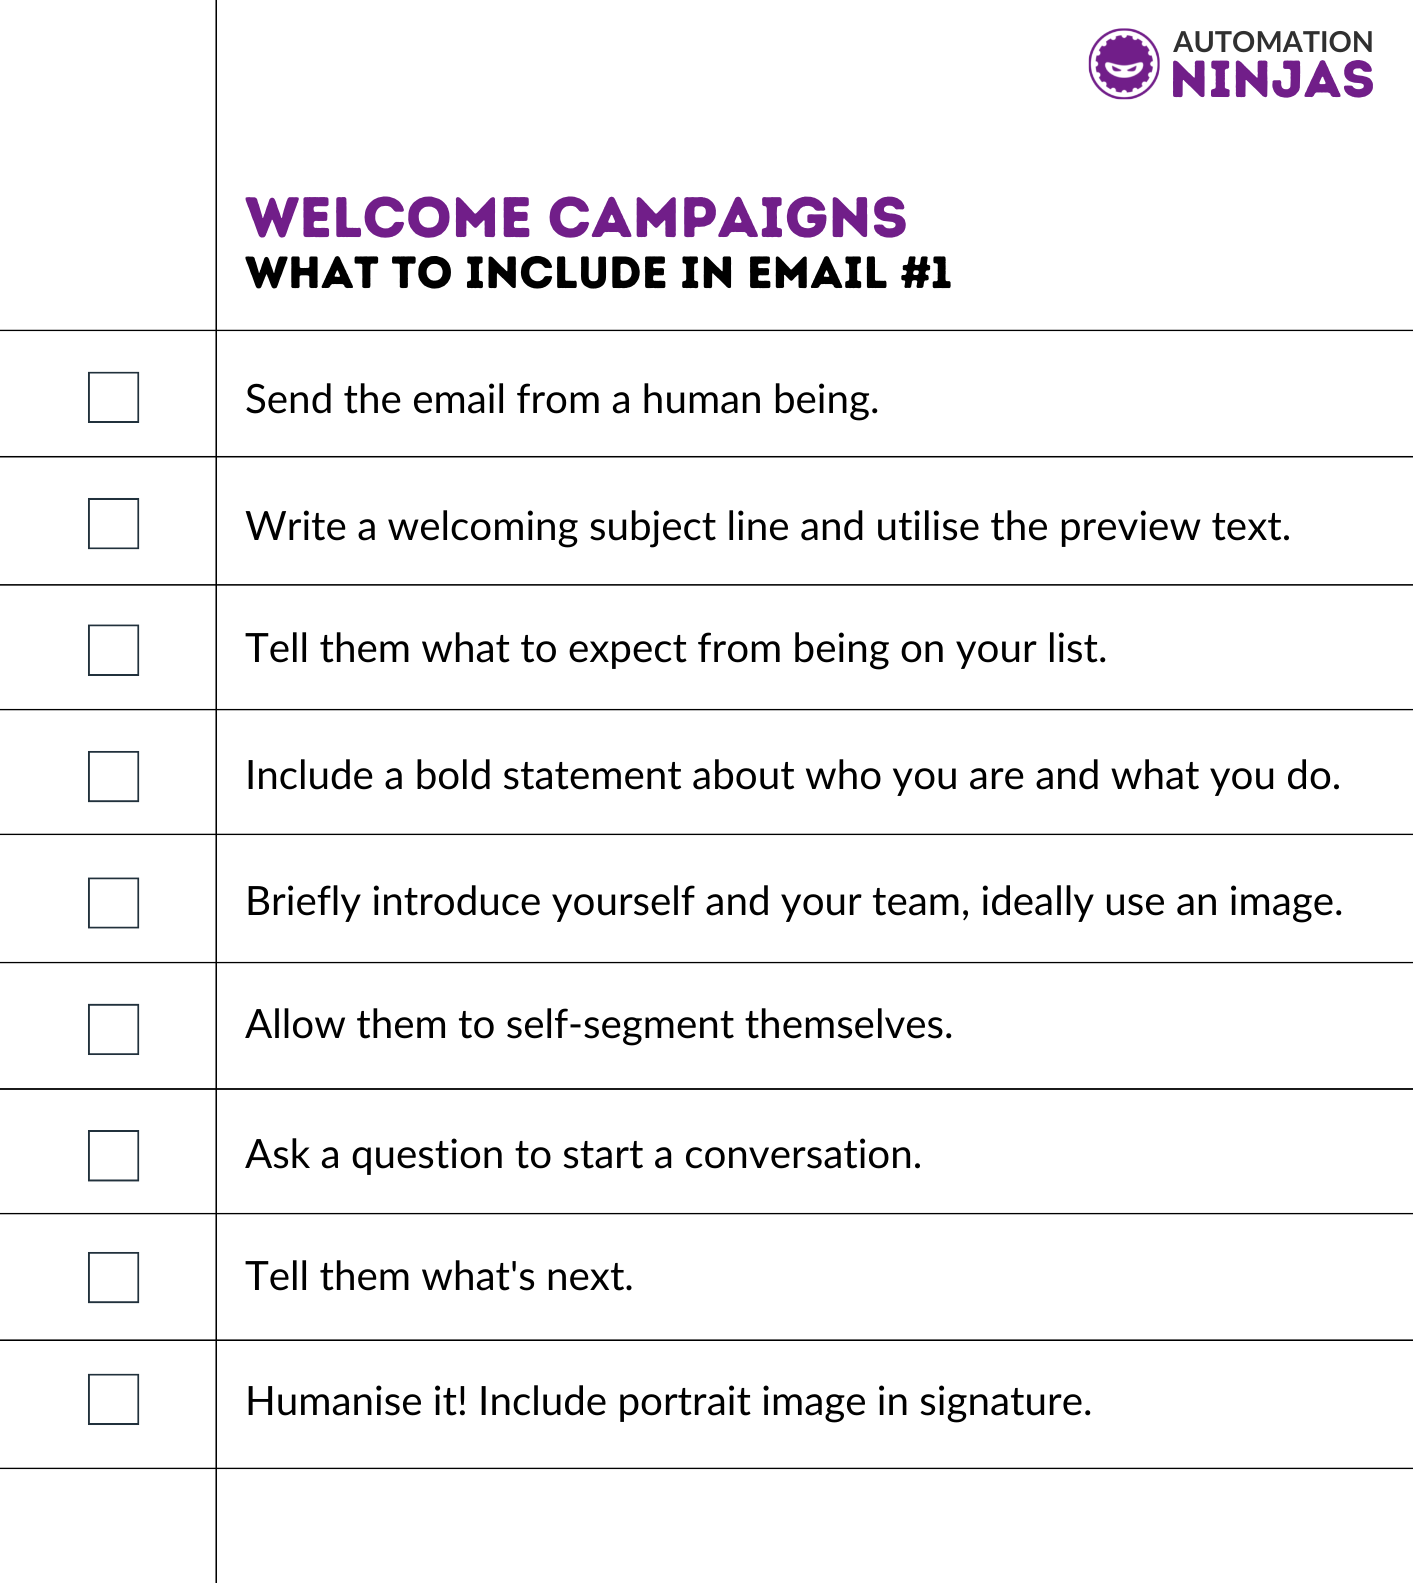 welcome campaigns checklist - What to include in email #1